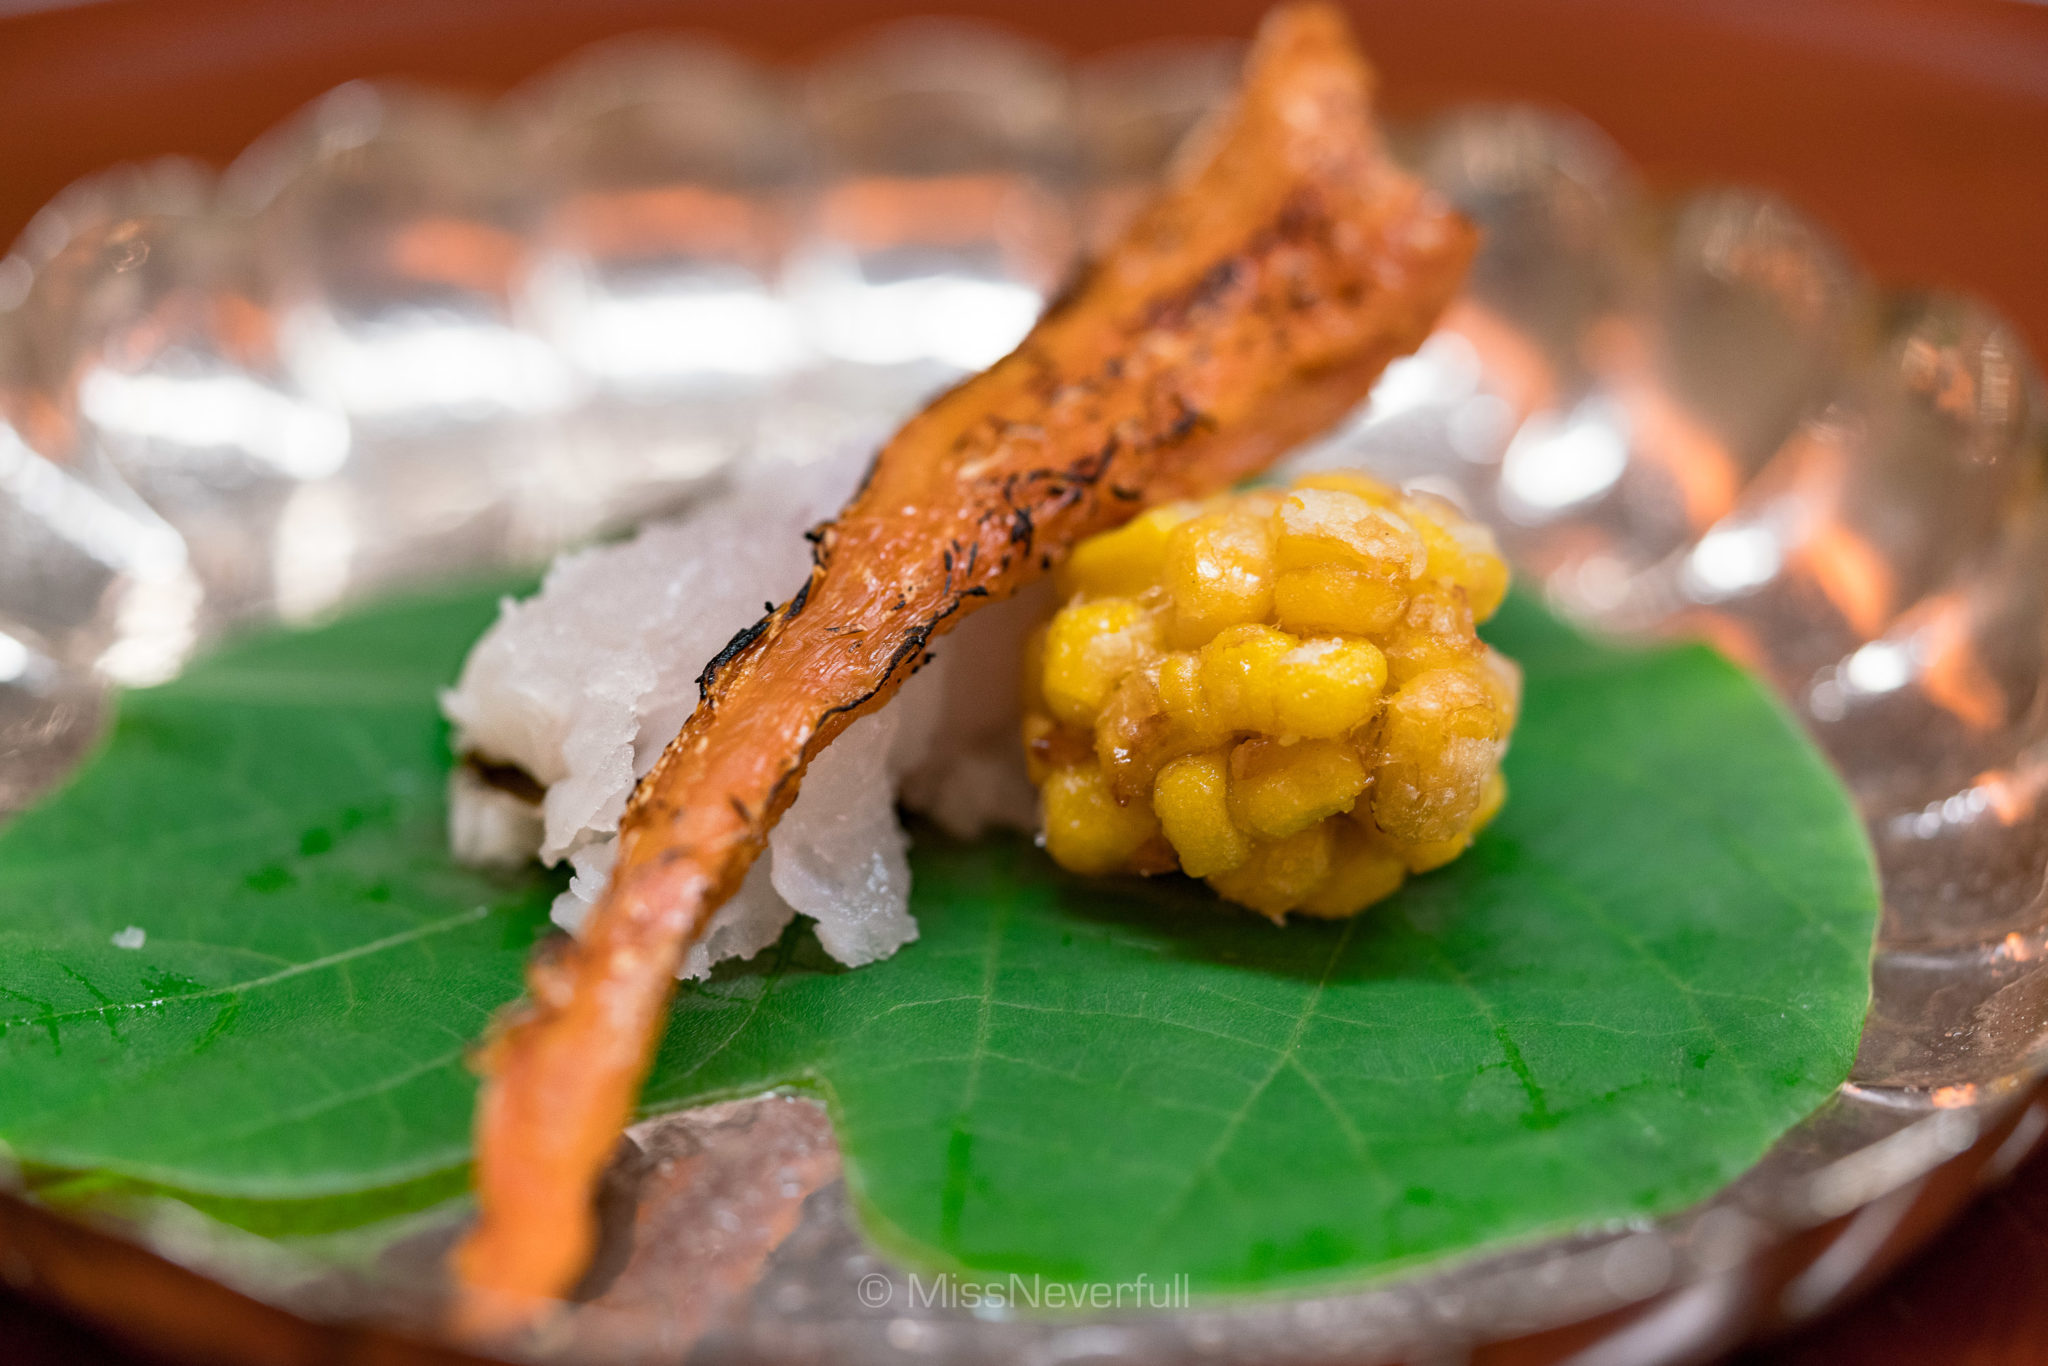 6. Hamo, Bachiko (dried sea cucumber ovaries), corn fritter | 鱧とバチコとうもろこしの揚げ物